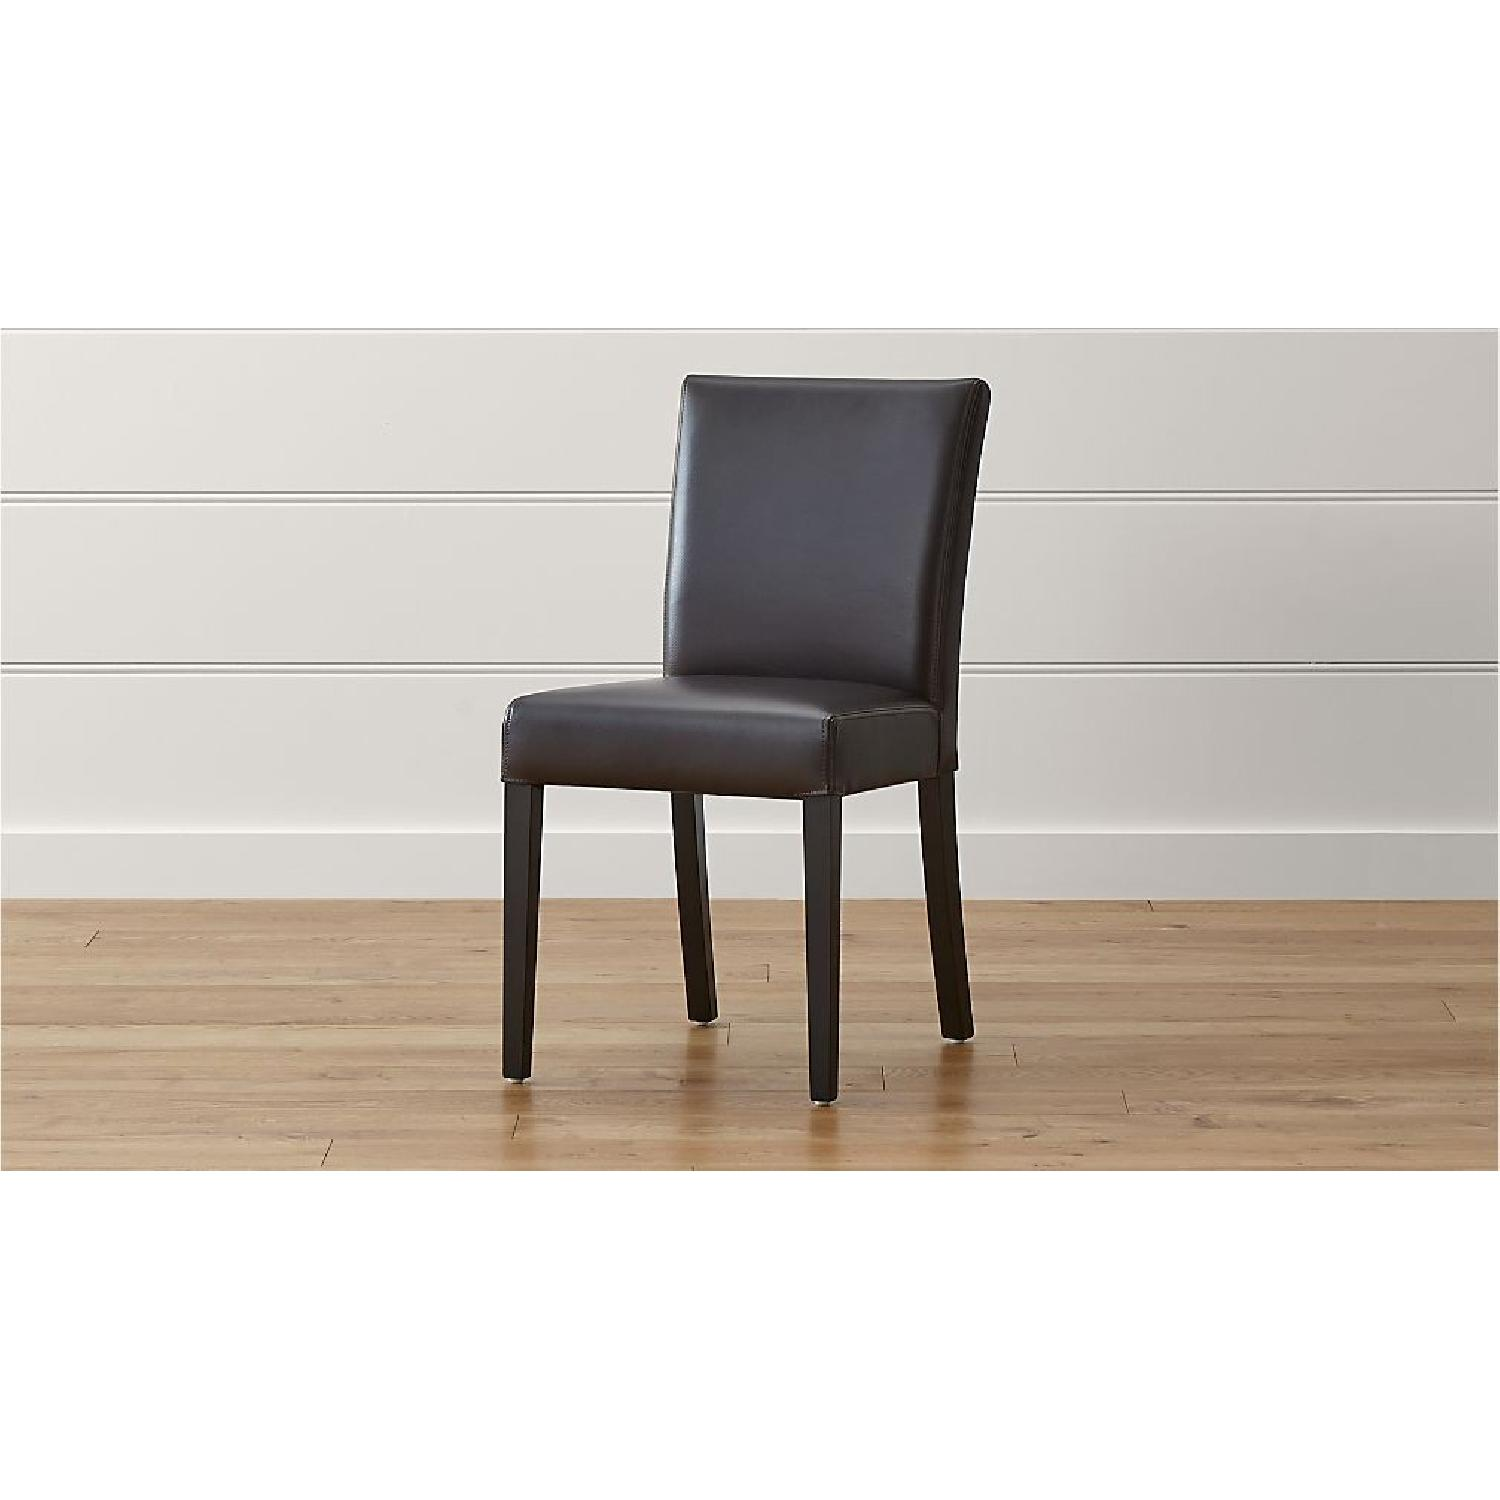 Crate & Barrel Lowe Chocolate Leather Dining Chairs-1